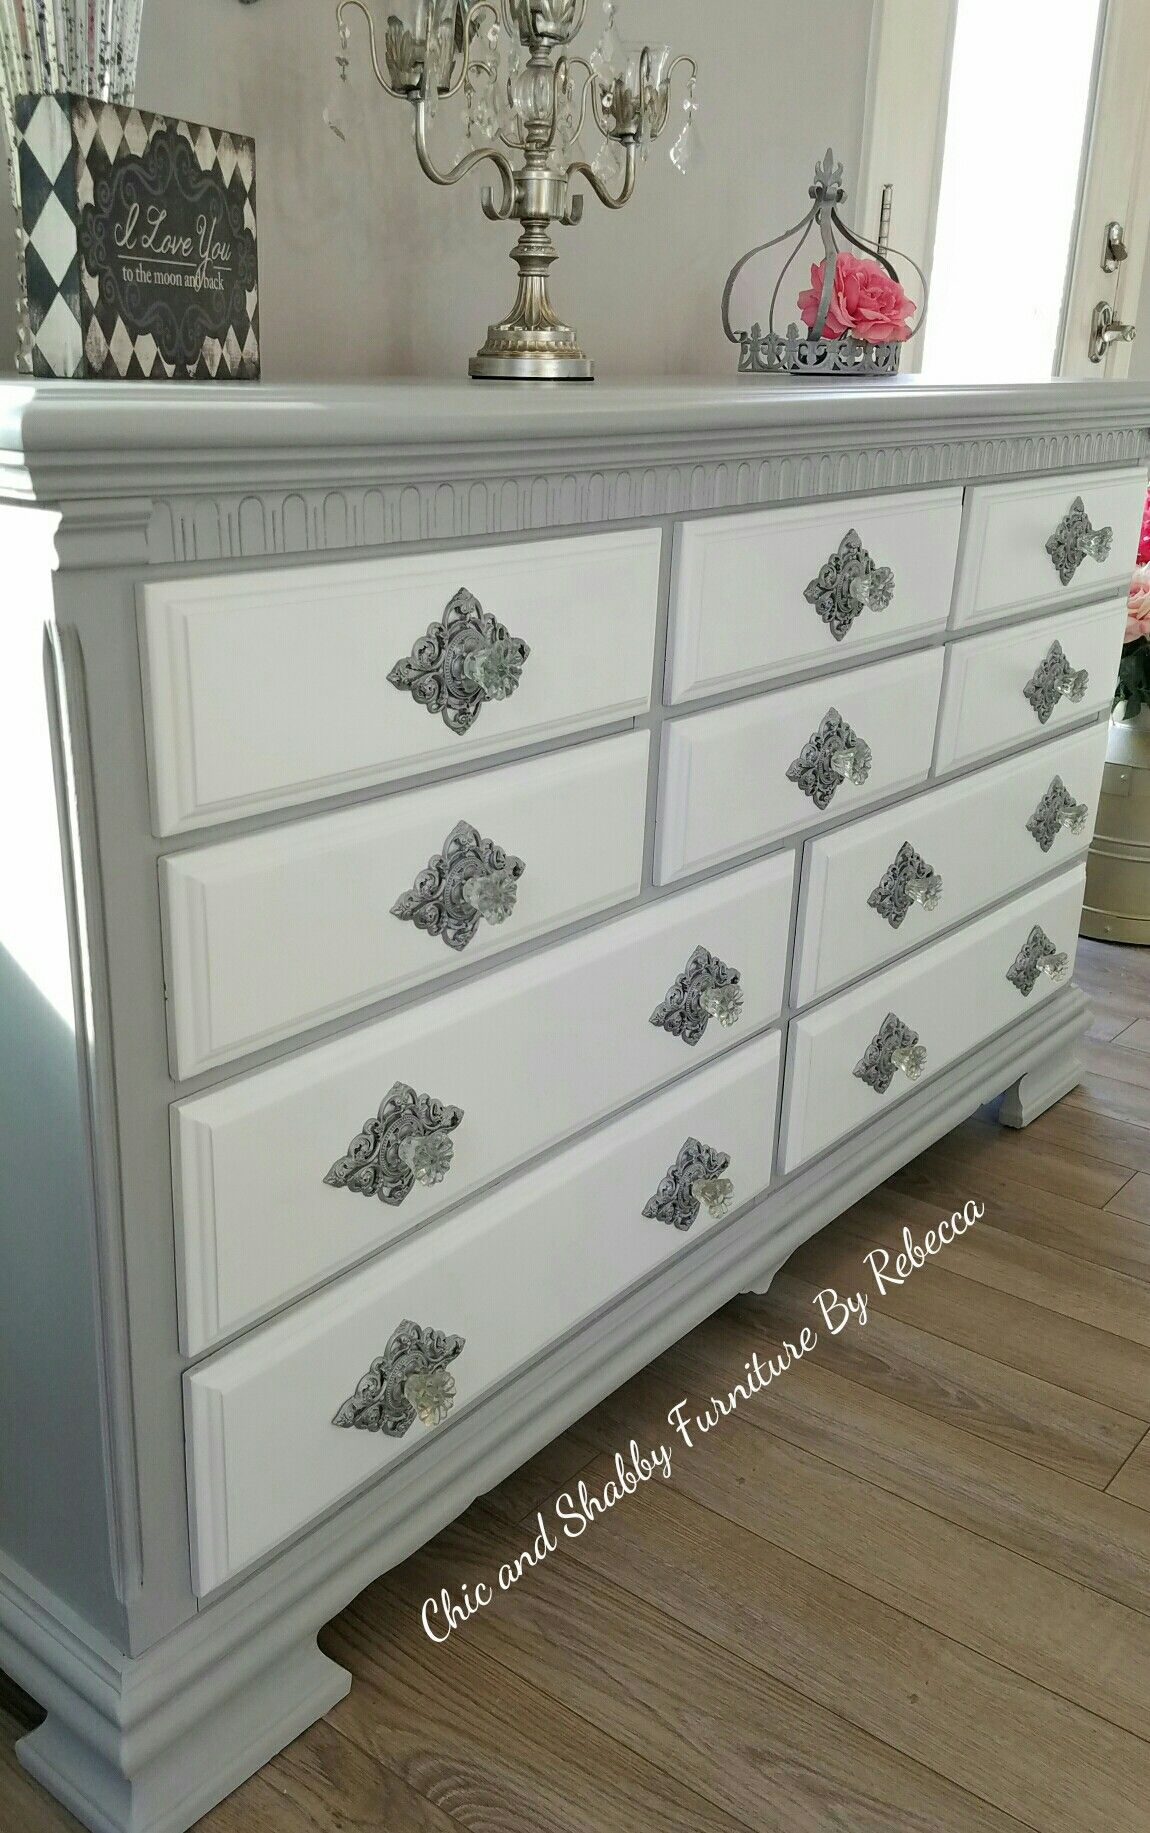 Pin On My Furniture Makeovers Upcycled Repurposed And